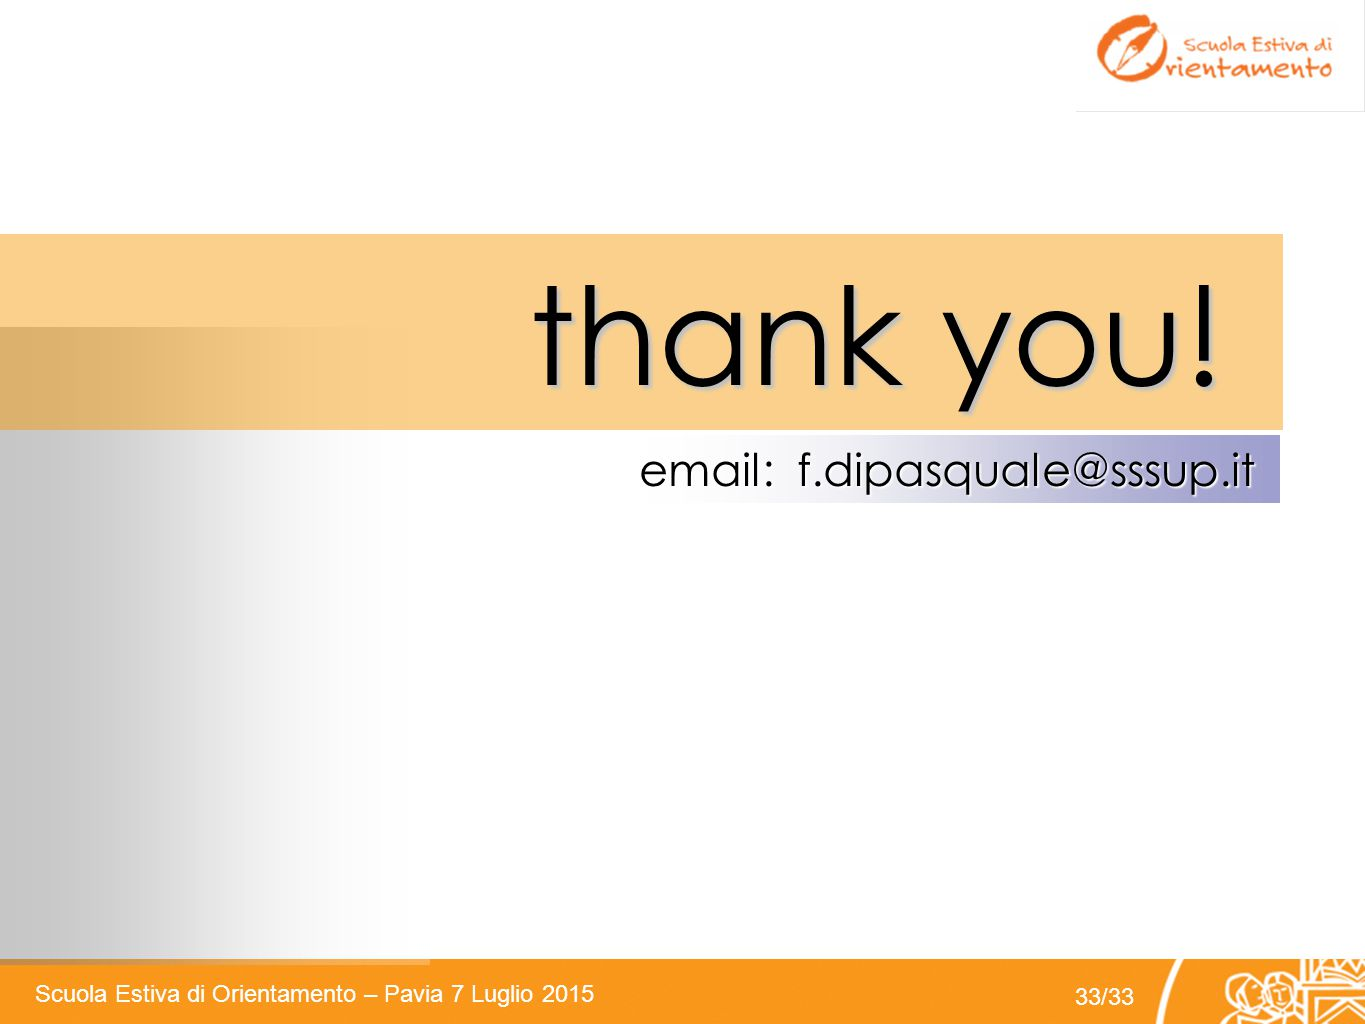 thank you! email: f.dipasquale@sssup.it